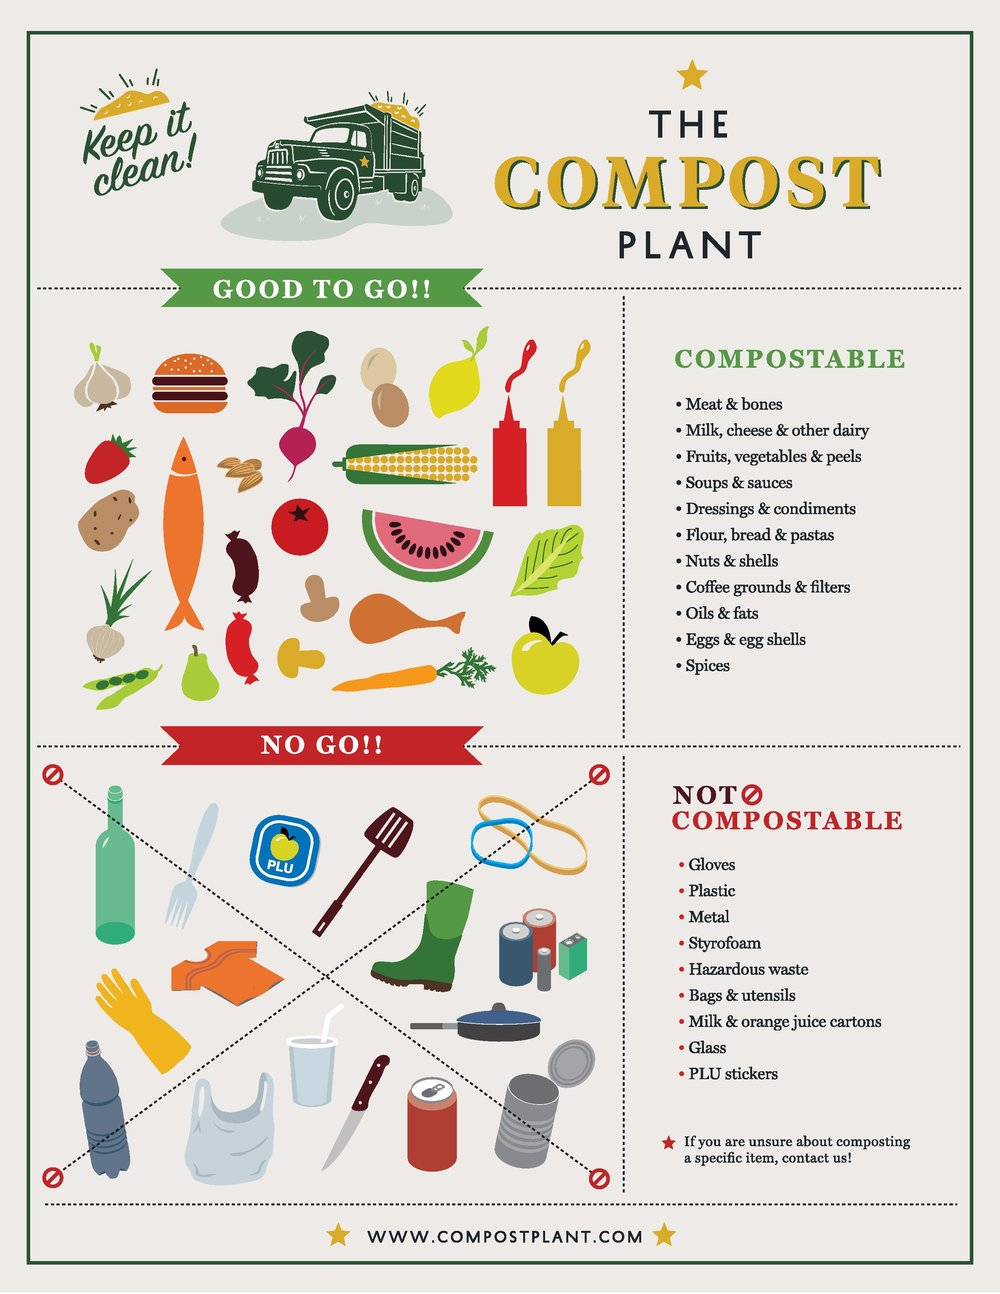 What is compostable?